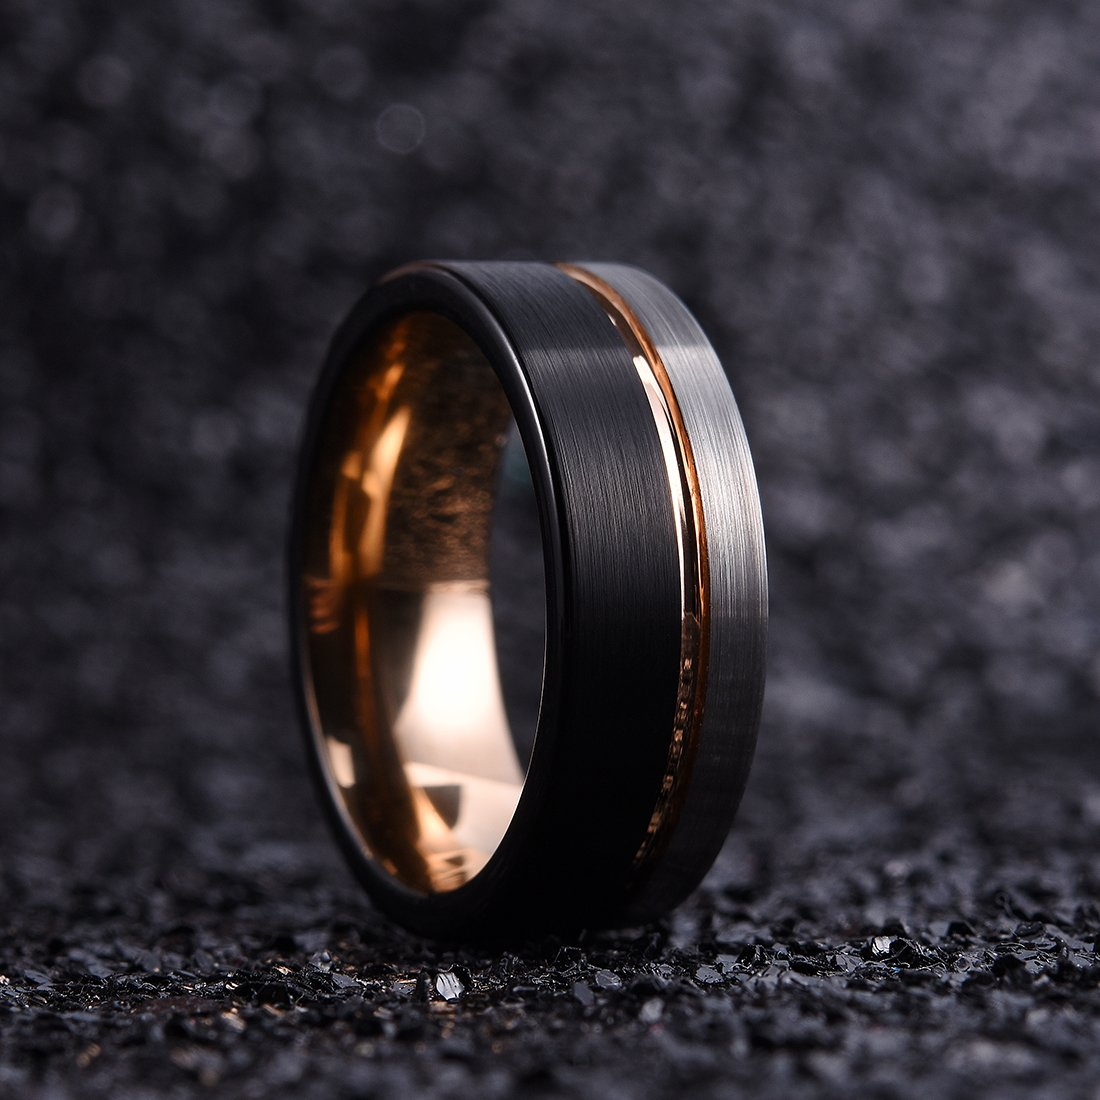 King Will Loop Tungsten Carbide Wedding Band 8mm Rose Gold Line Ring Black and Silver Brushed Comfort Fit10.5 by King Will (Image #2)